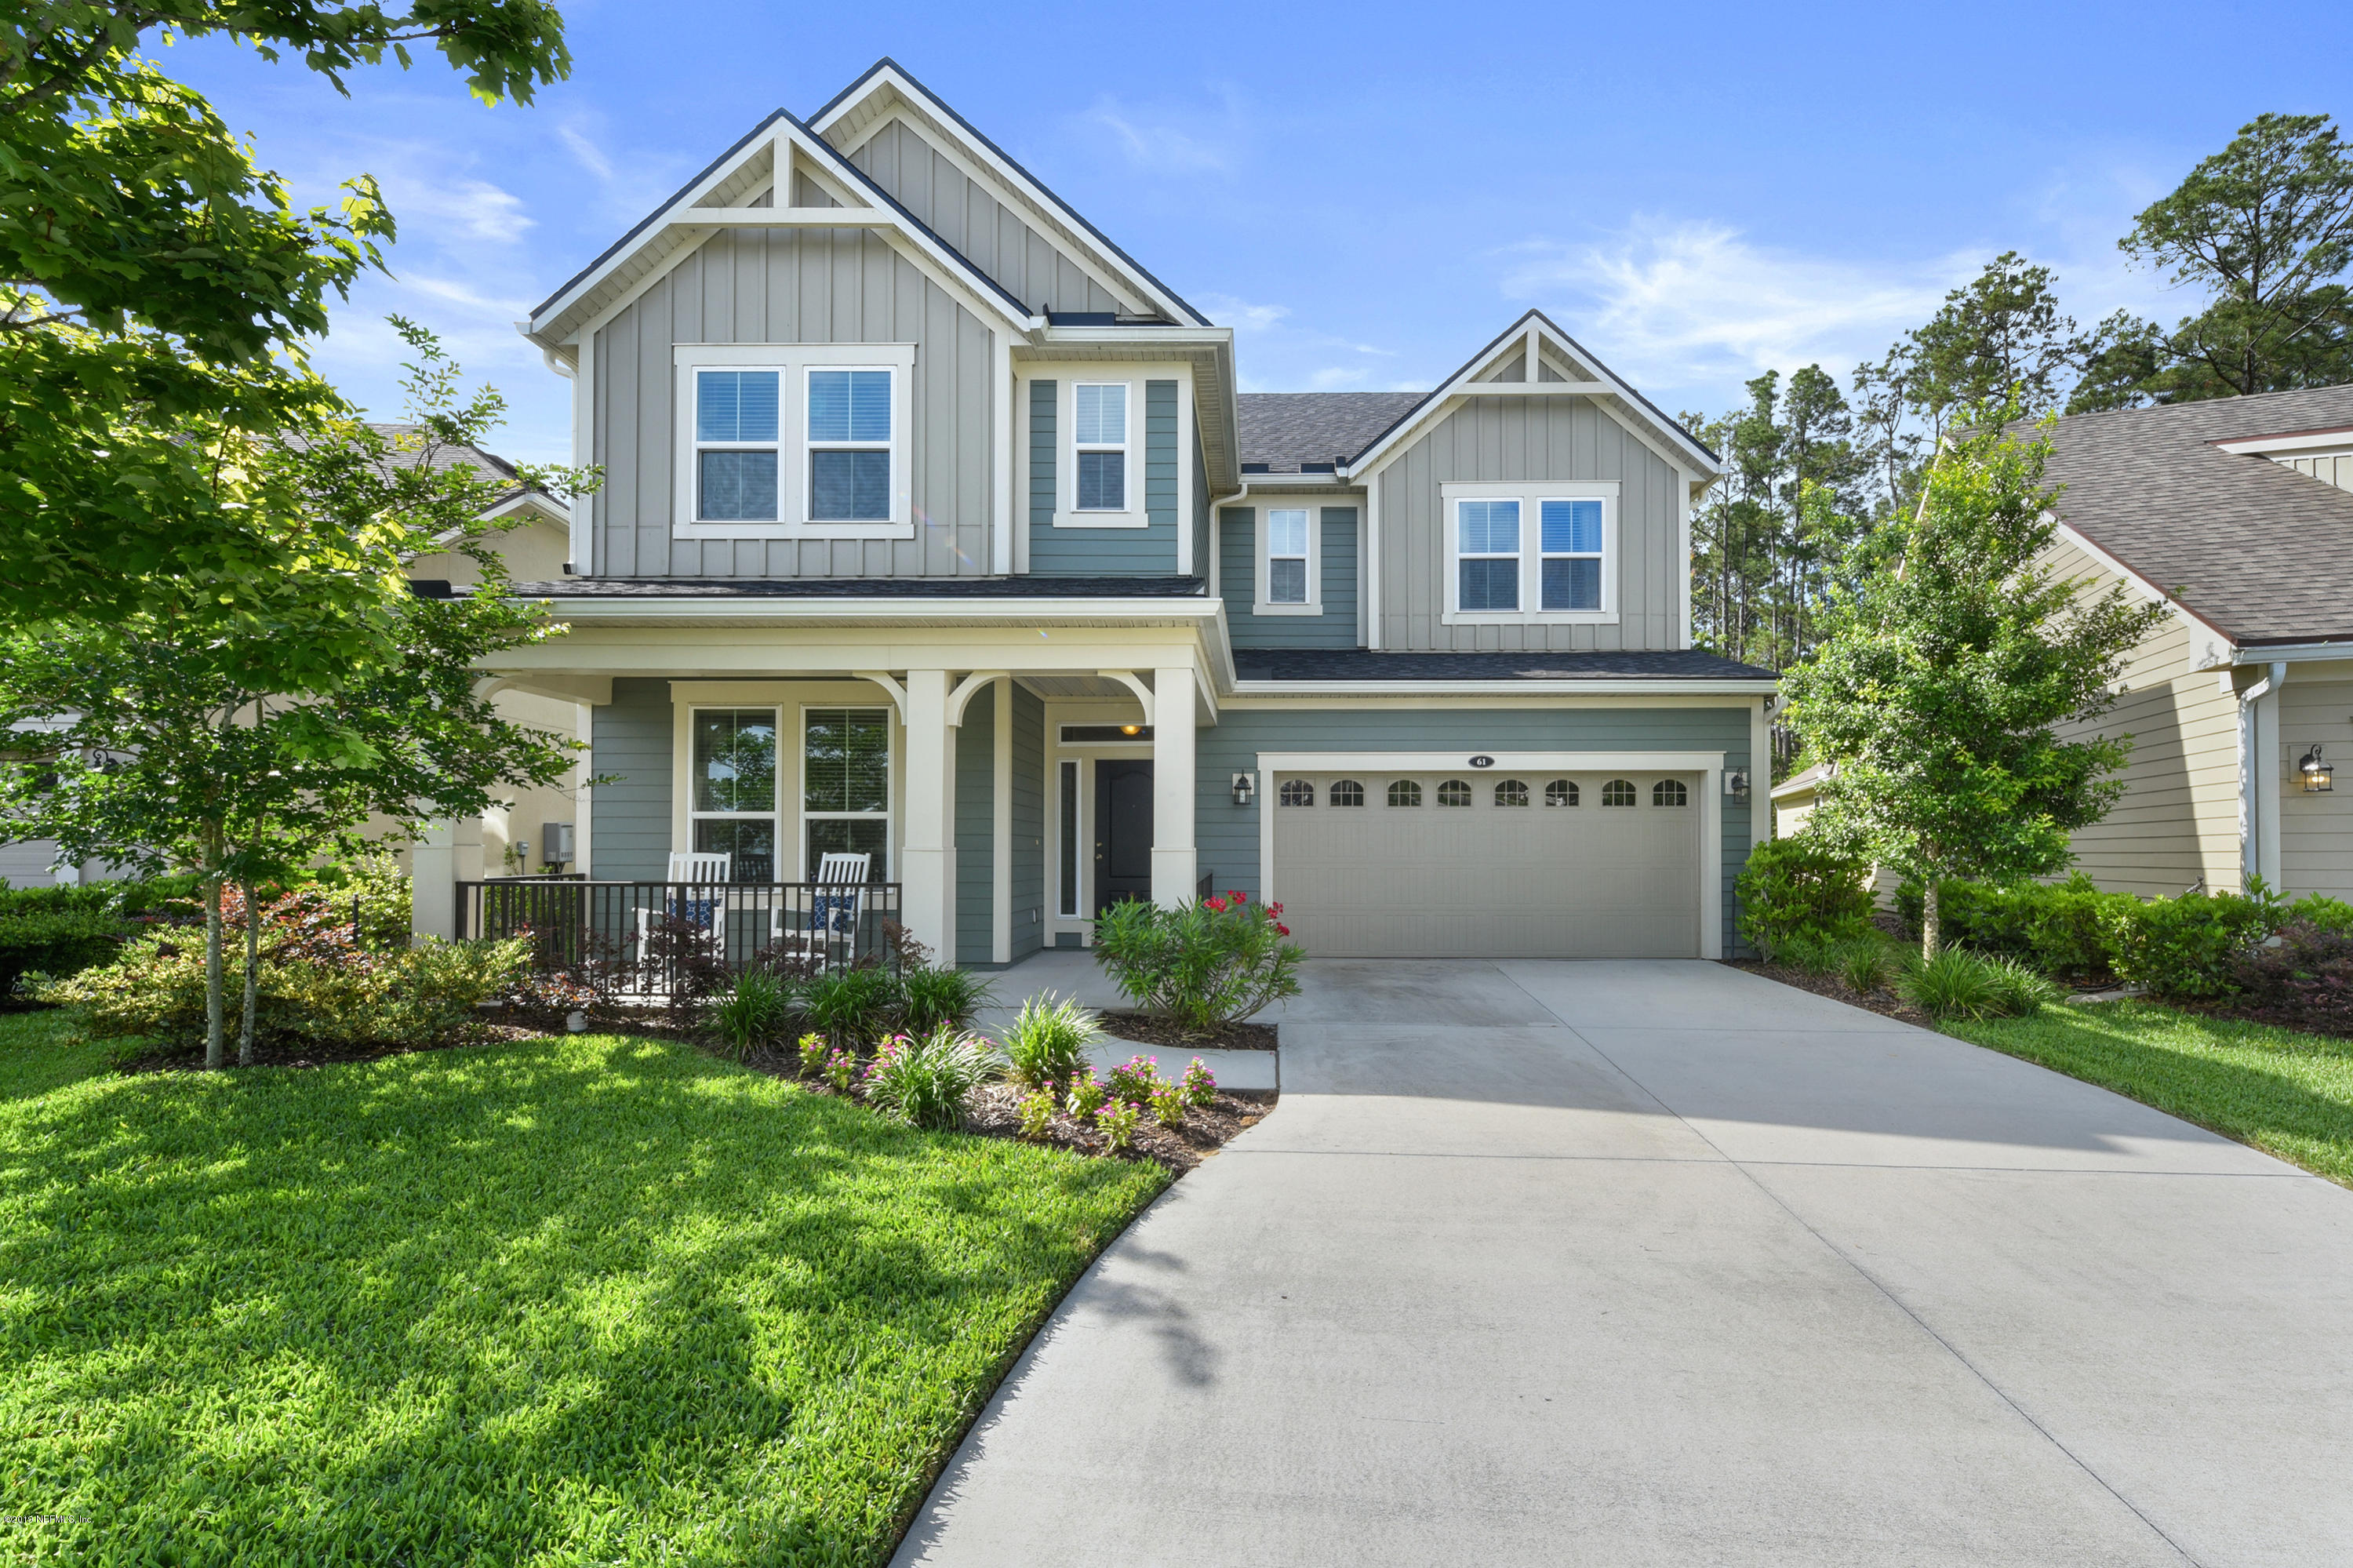 61 LONE EAGLE, PONTE VEDRA, FLORIDA 32081, 4 Bedrooms Bedrooms, ,2 BathroomsBathrooms,Residential - single family,For sale,LONE EAGLE,995086